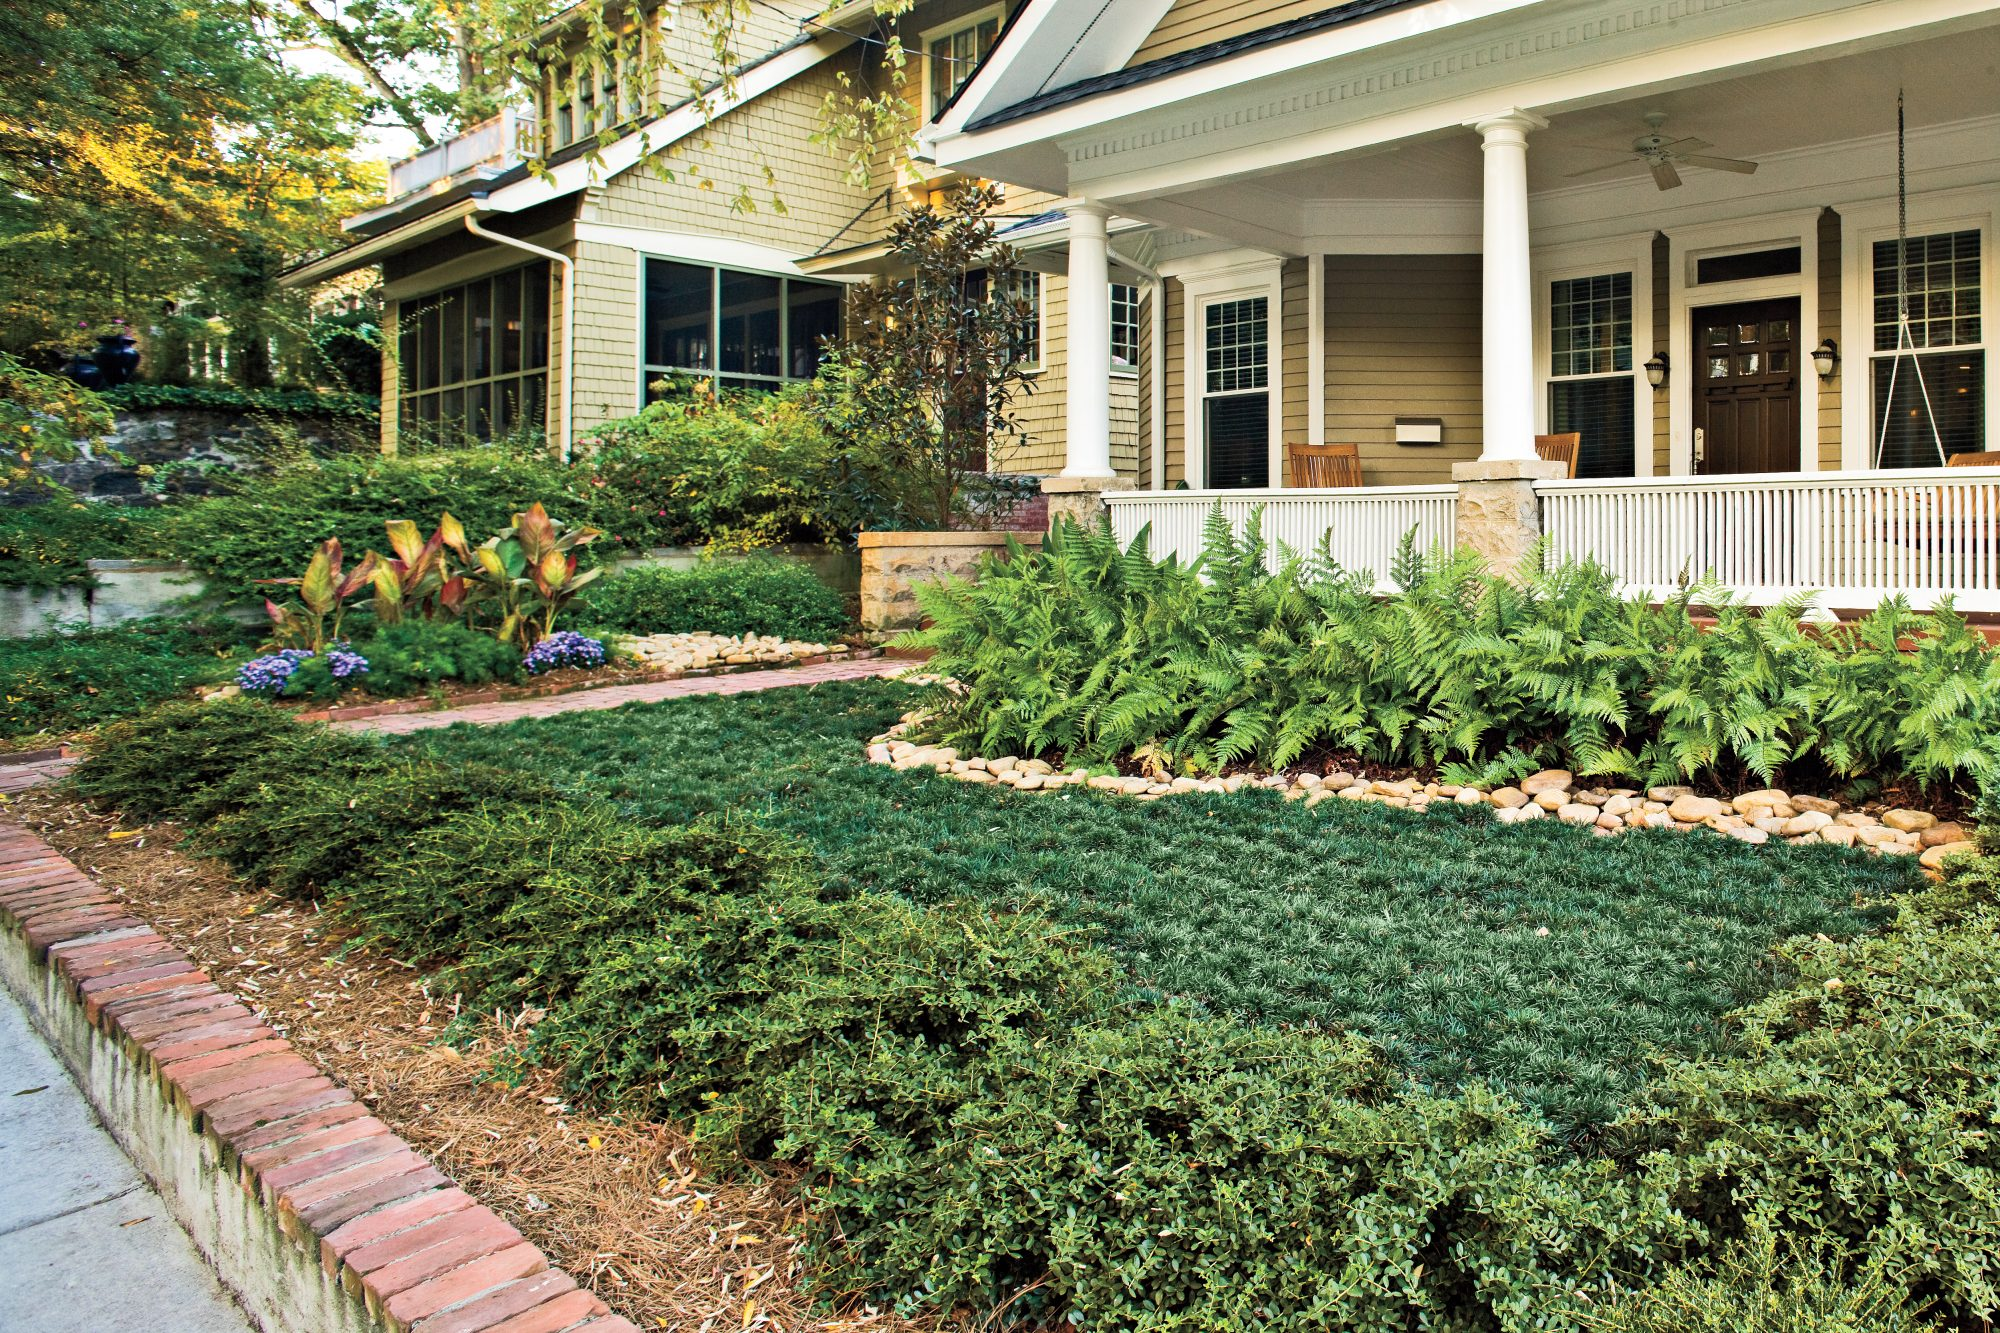 Garden Ideas To Replace Grass easy, no mow lawns - southern living